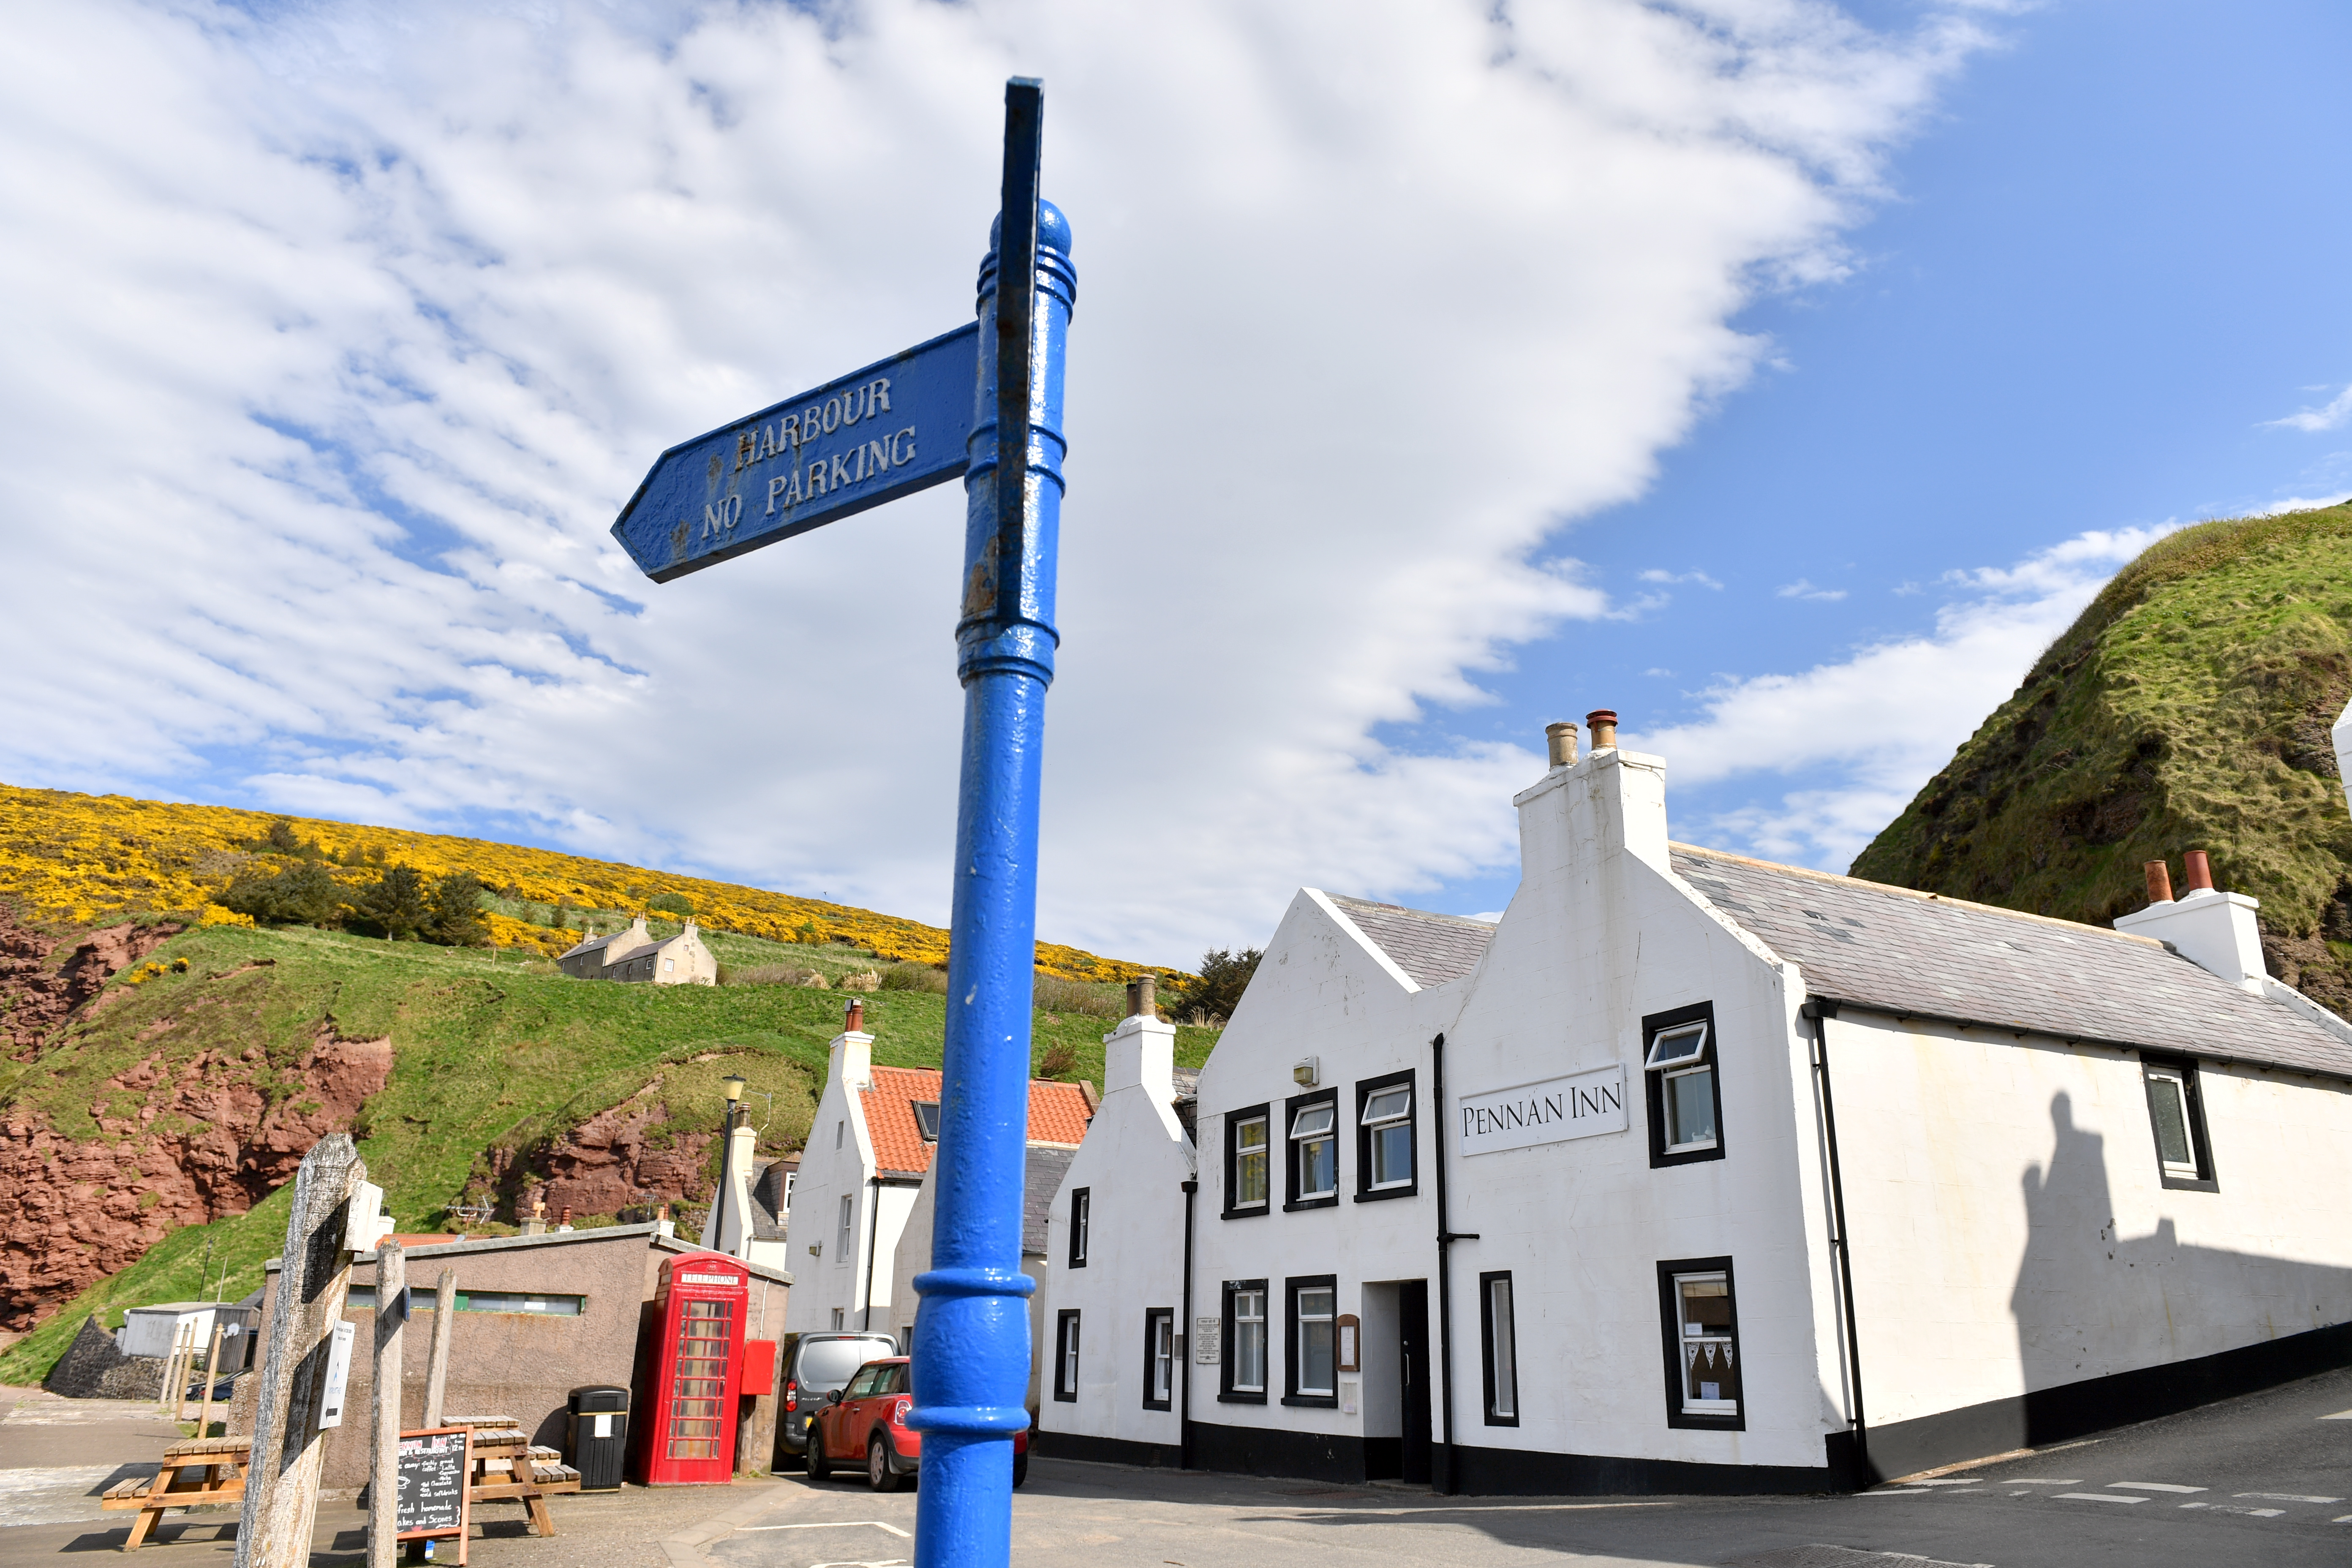 The Pennan Inn Picture by Kami Thomson